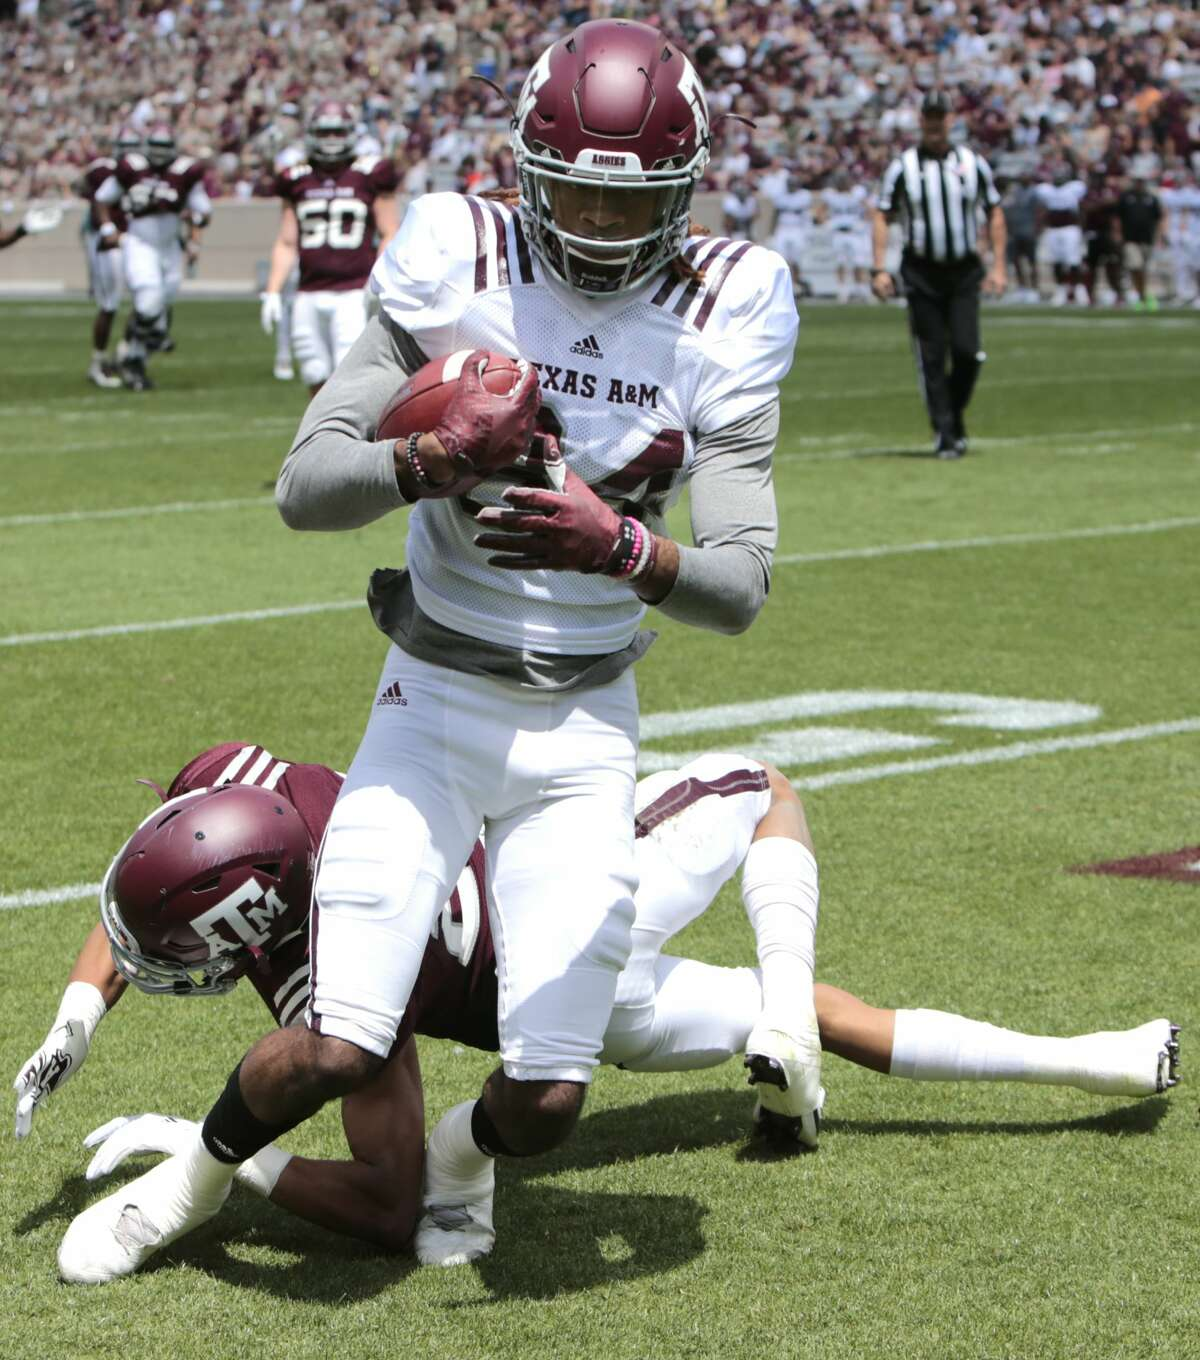 Texas A&M receiver Kendrick Rogers (84) comes down with a 16-yard touchdown reception over defensive back Travon Fuller during the Texas A&M spring football game at Kyle Field on Saturday, April 8, 2017, in College Station. ( Brett Coomer / Houston Chronicle )